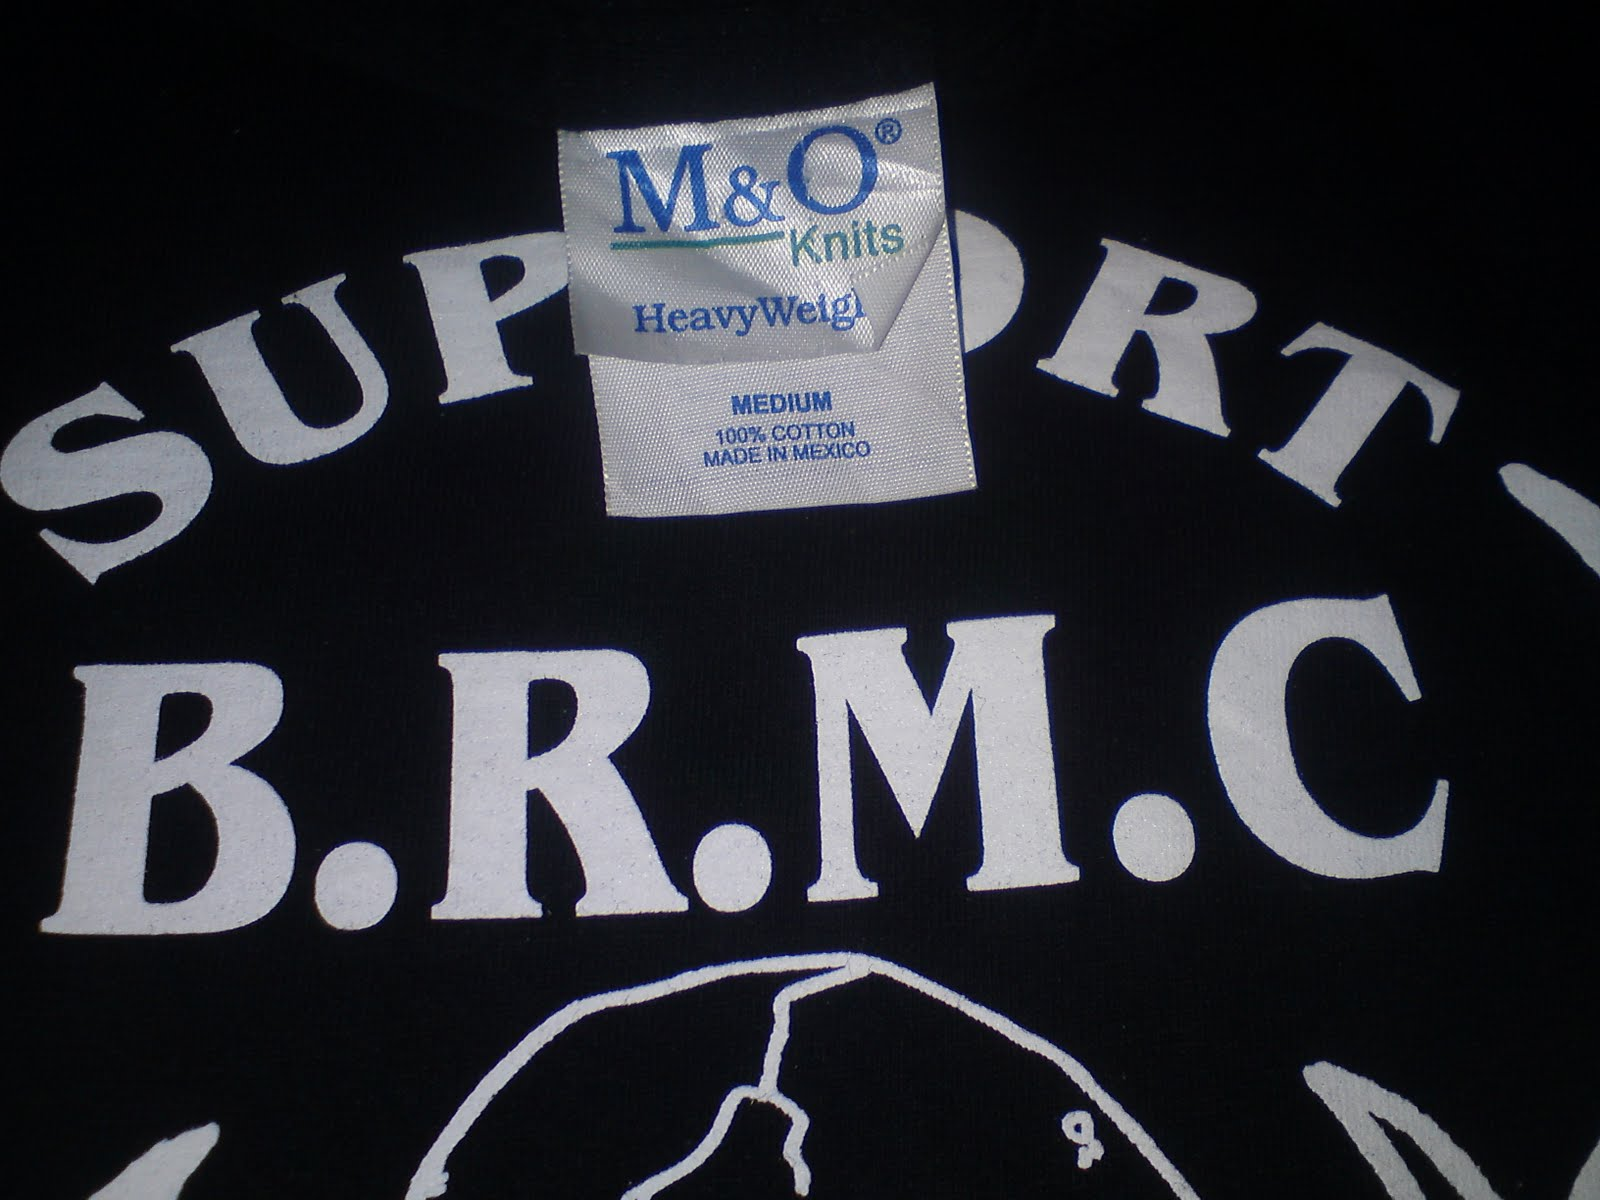 T shirt black rebel motorcycle club - Black Rebel Motorcycle Club B R M C Tag By M O Size M Pit To Pit 19 5 Length 28 Very Very Good Condition A Like New Sold